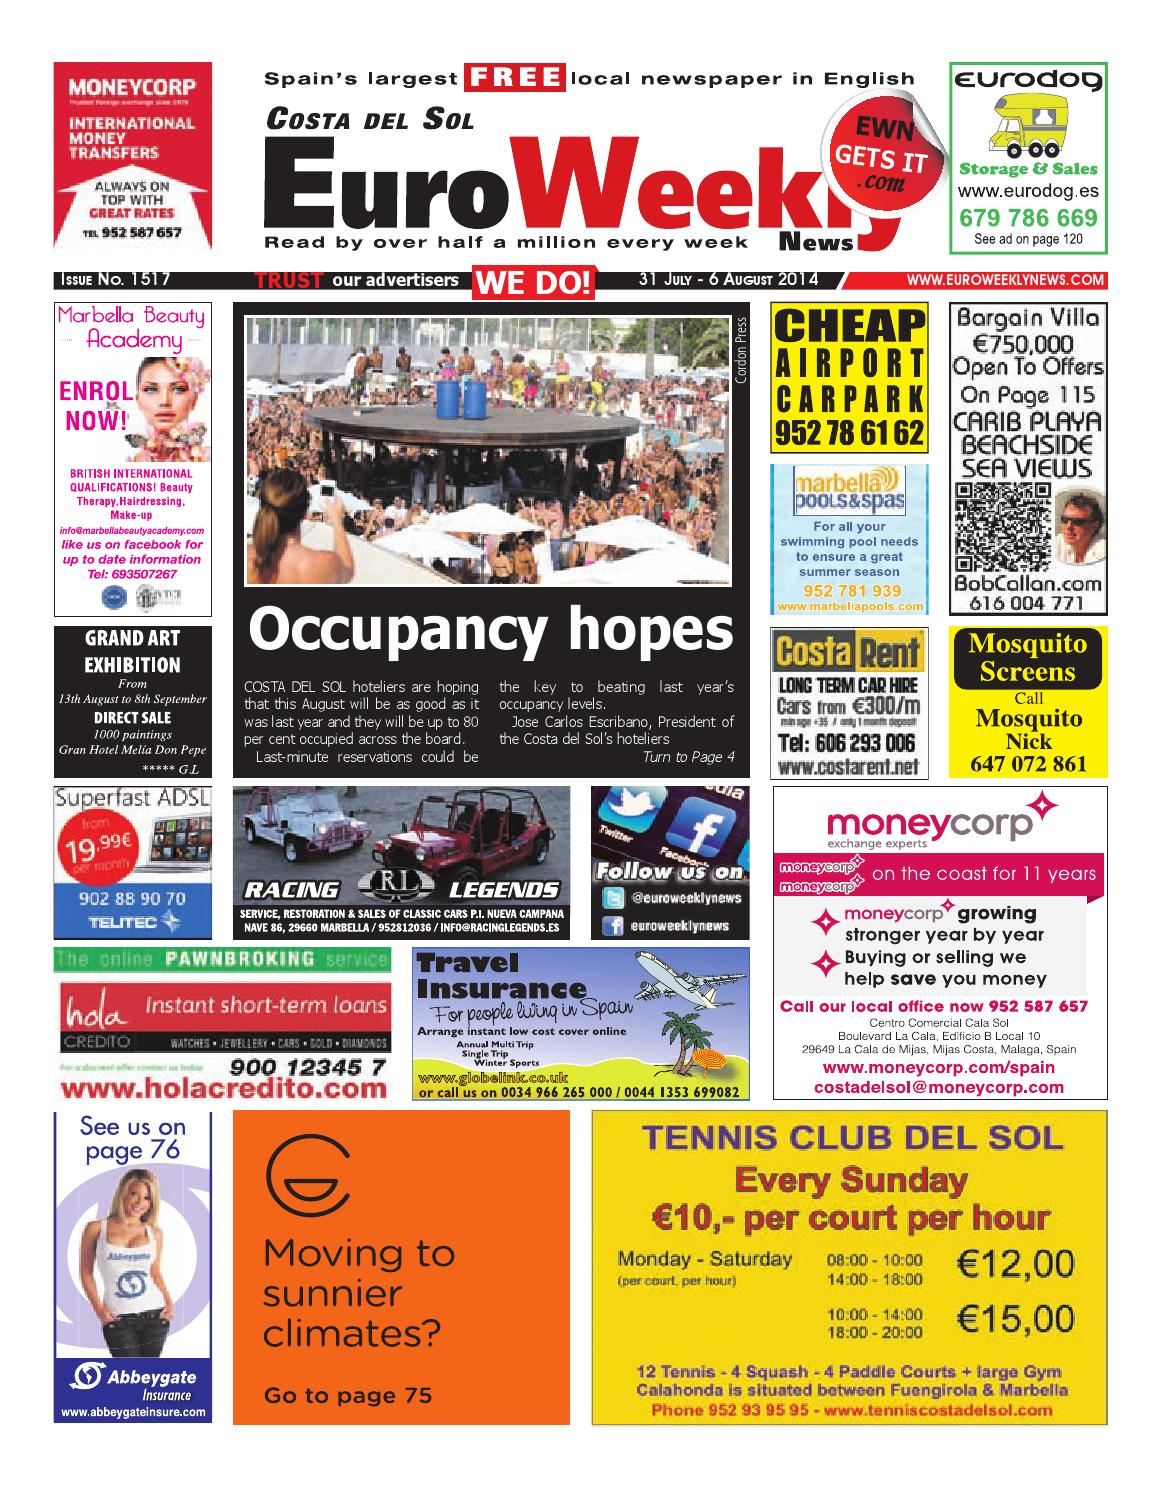 Euro weekly news costa del sol 31 july 6 august 2014 issue 1517 euro weekly news costa del sol 31 july 6 august 2014 issue 1517 by euro weekly news media sa issuu fandeluxe Image collections